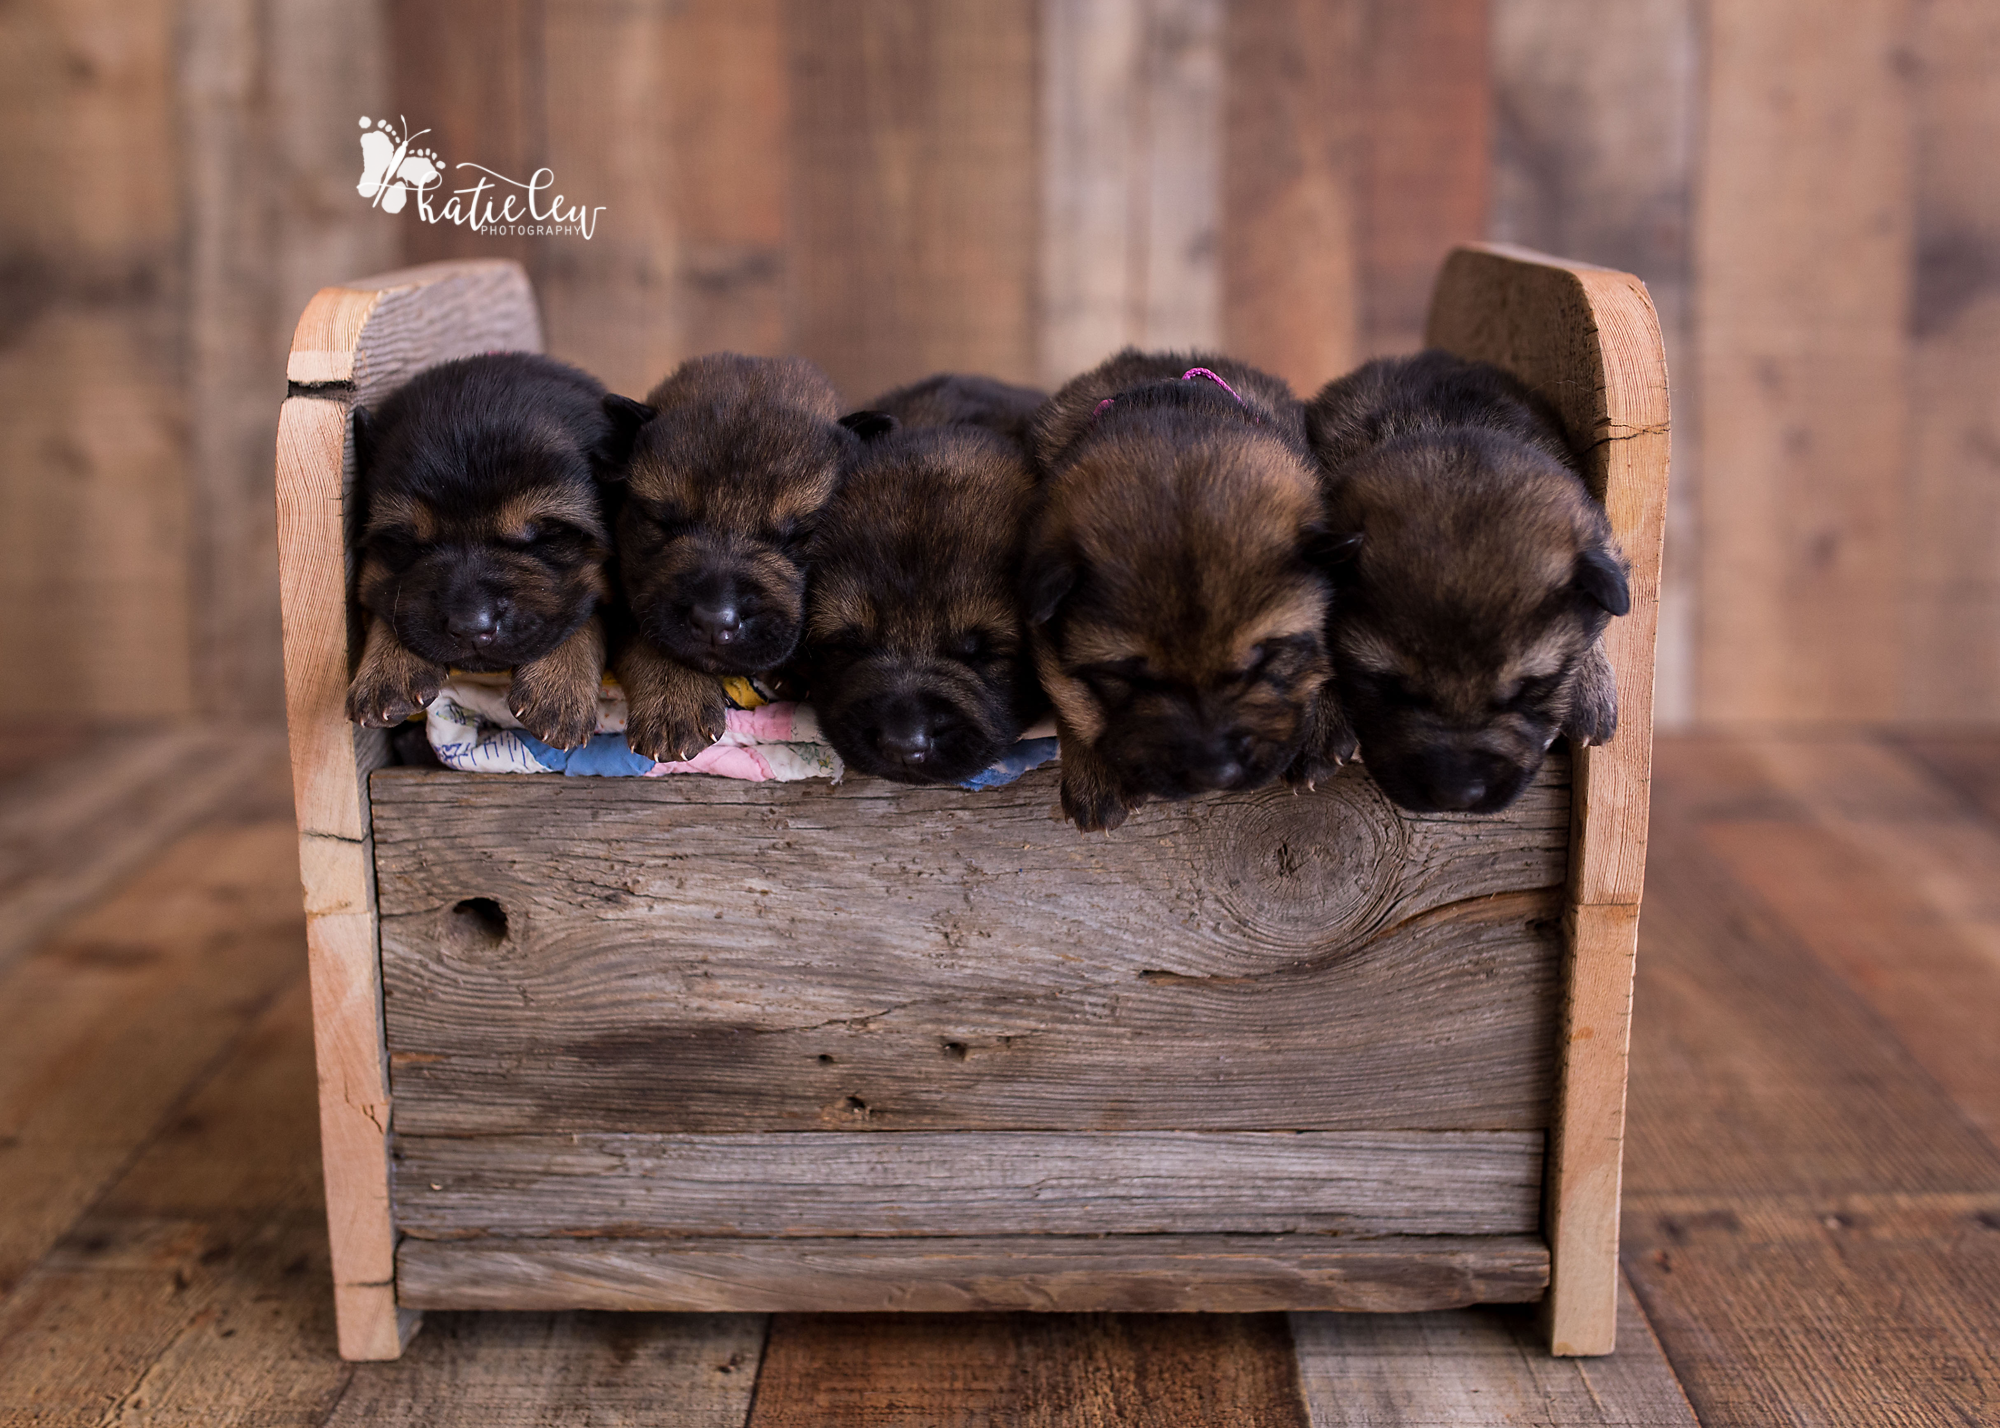 german shepherd puppies squished together in a bed photo prop